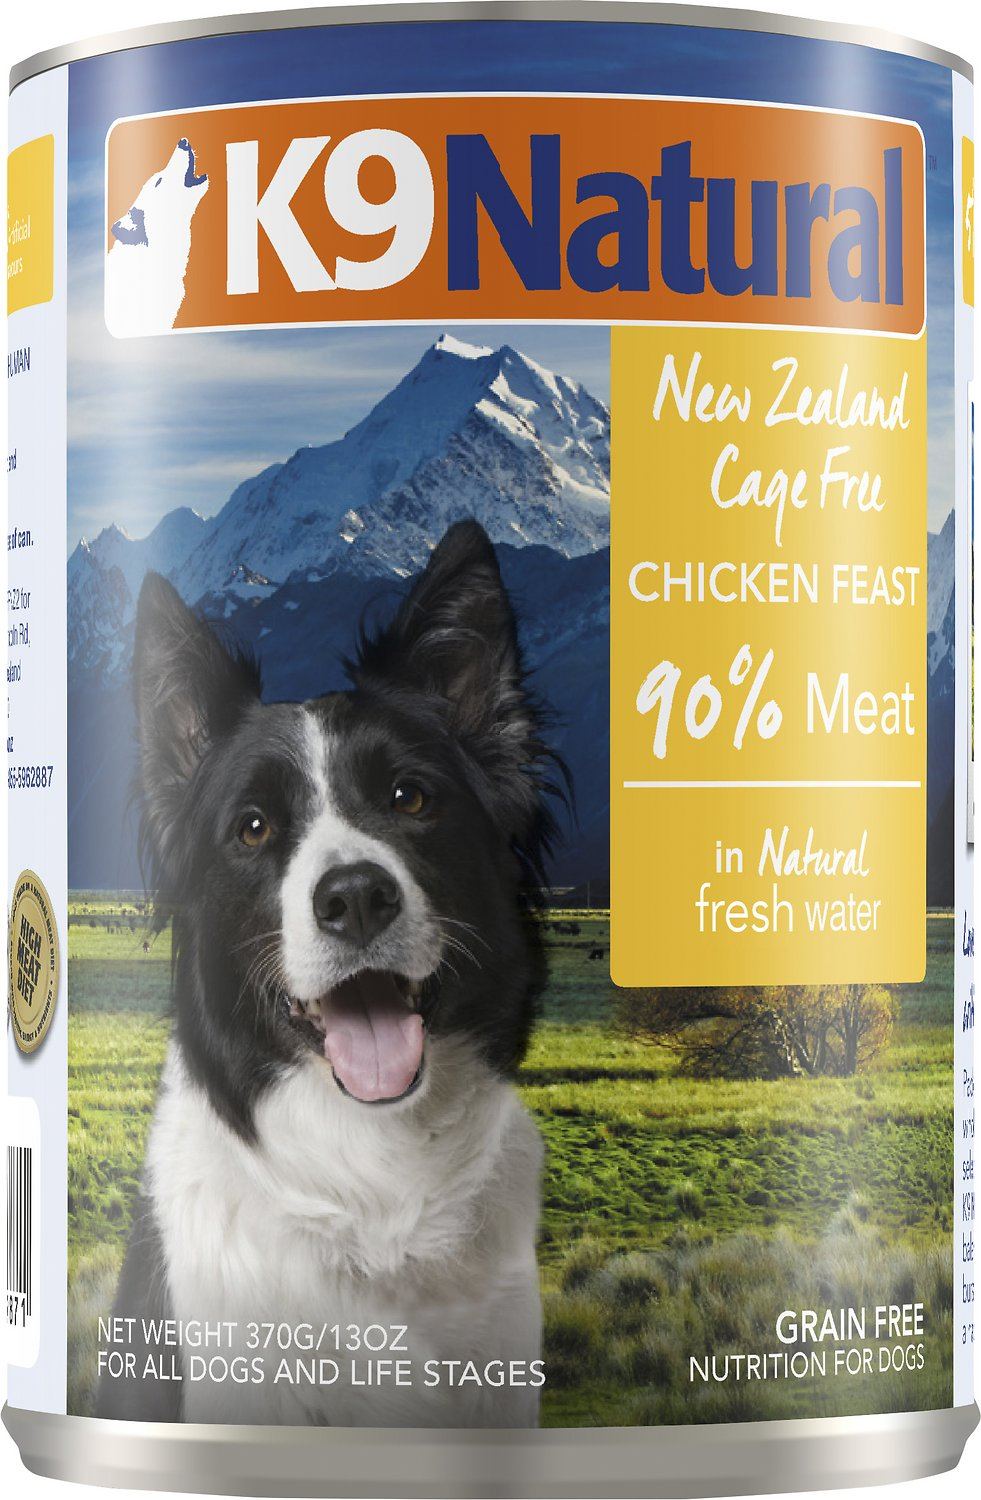 K9 Natural Chicken Feast Grain-Free Wet Dog Food, 6-oz can